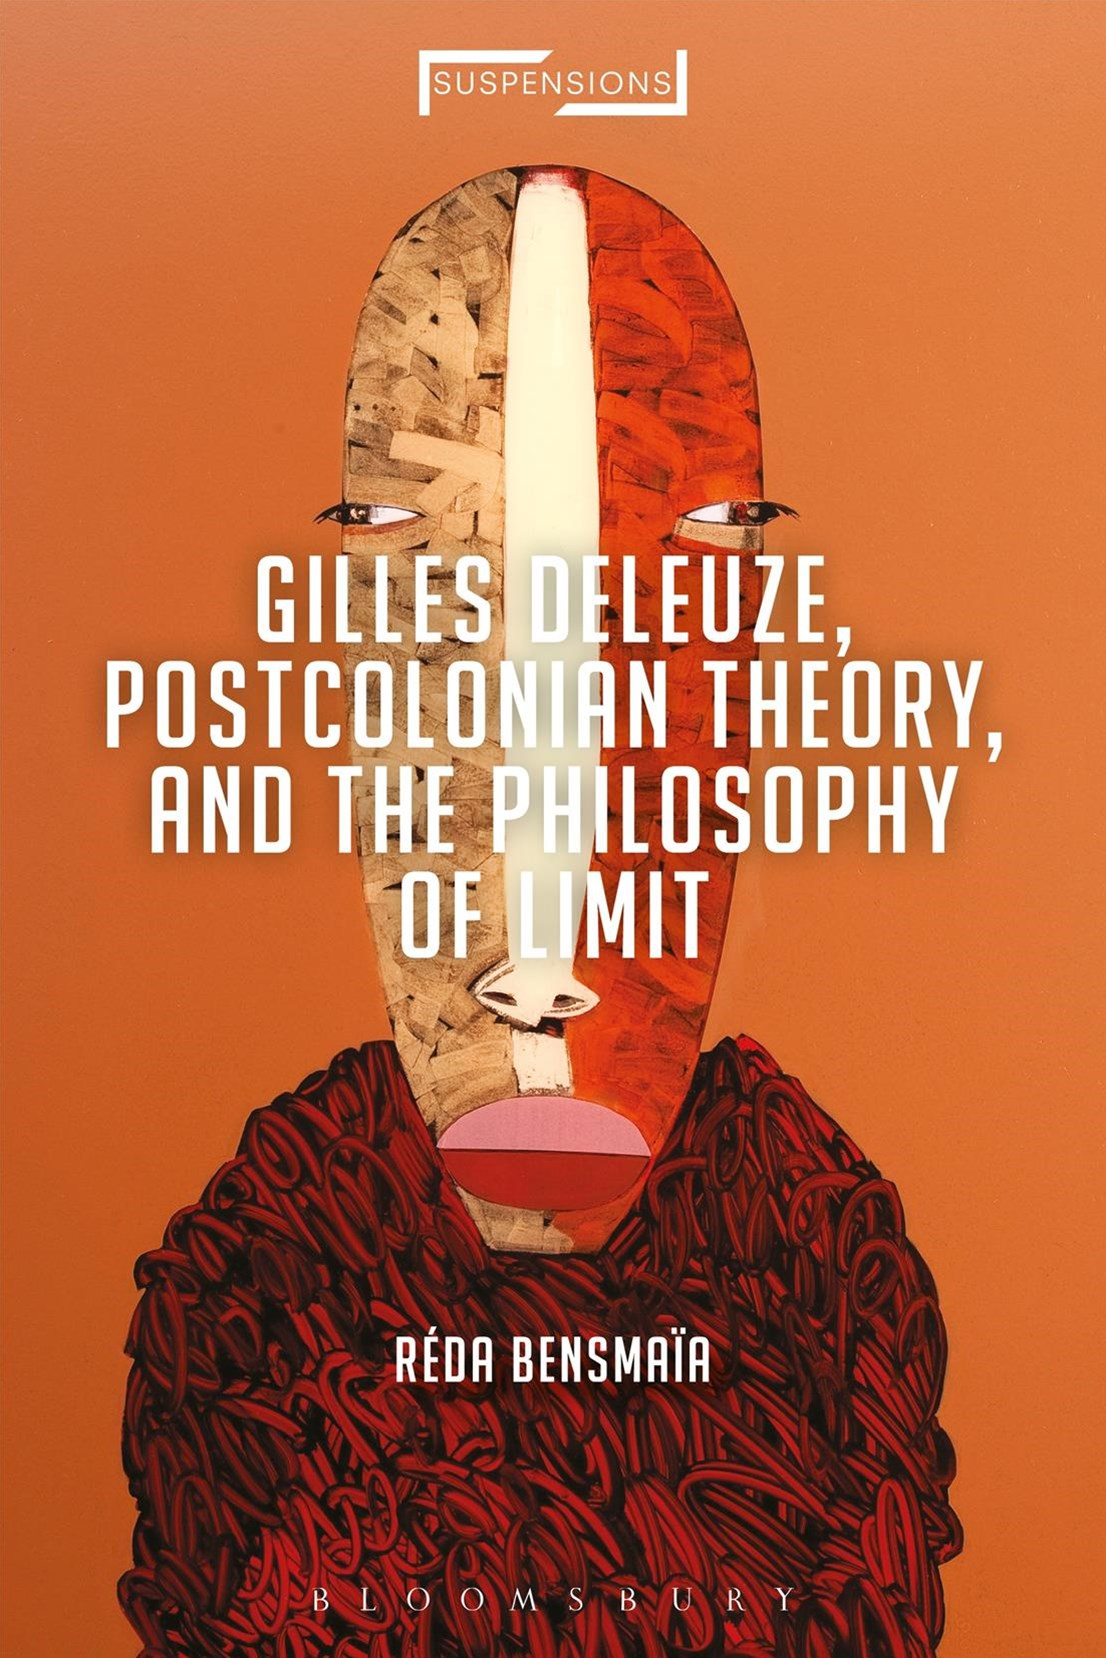 Gilles Deleuze, Postcolonian Theory, and the Philosophy of Limit